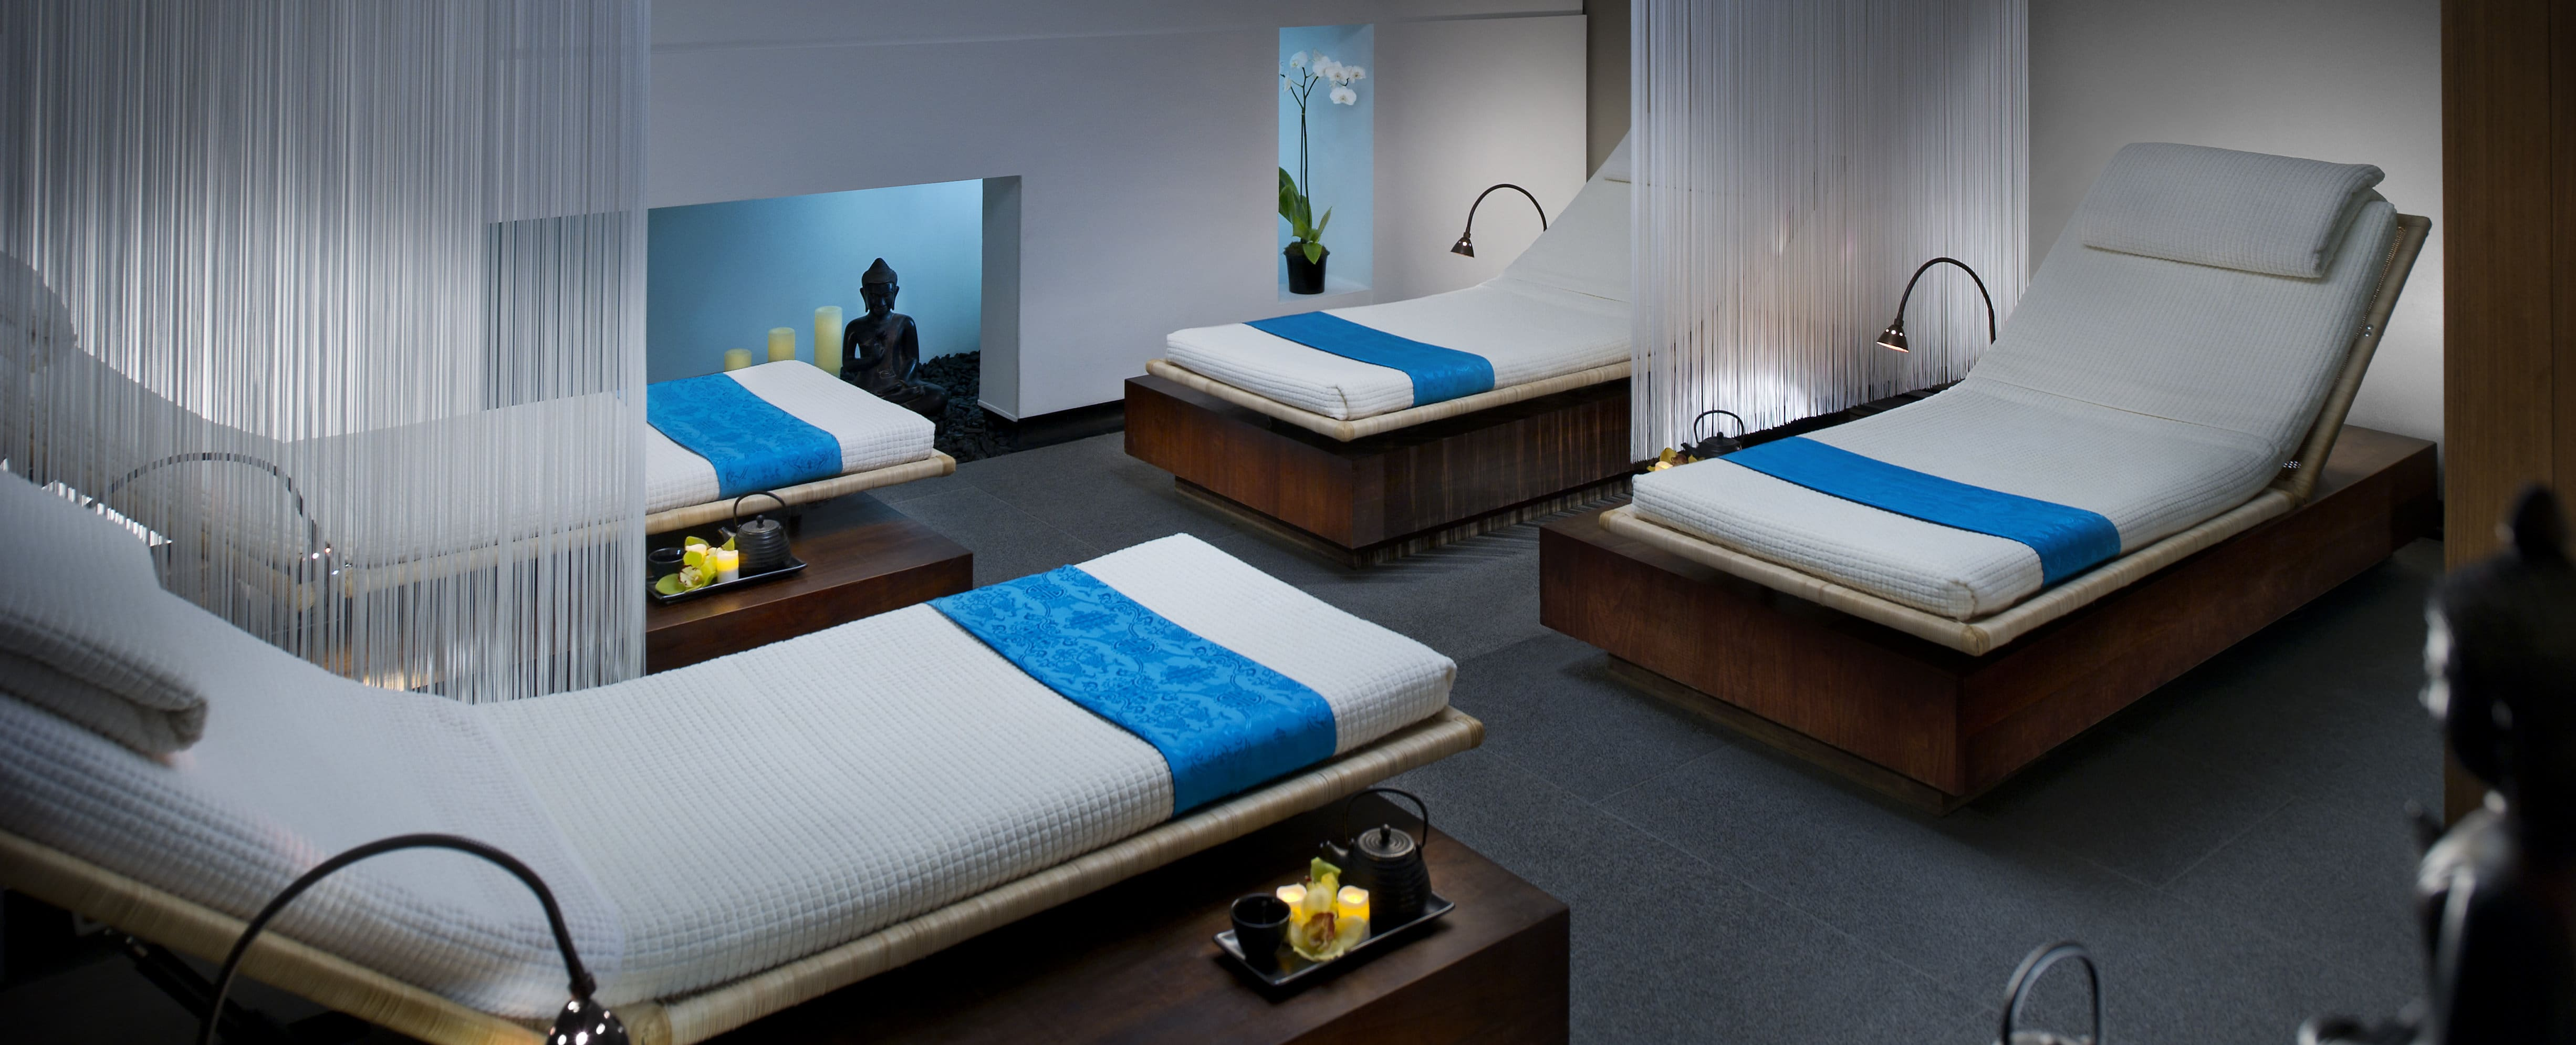 Our luxurious spa is one of the best in the city, offering tranquil ambiance and indulgent treatments.